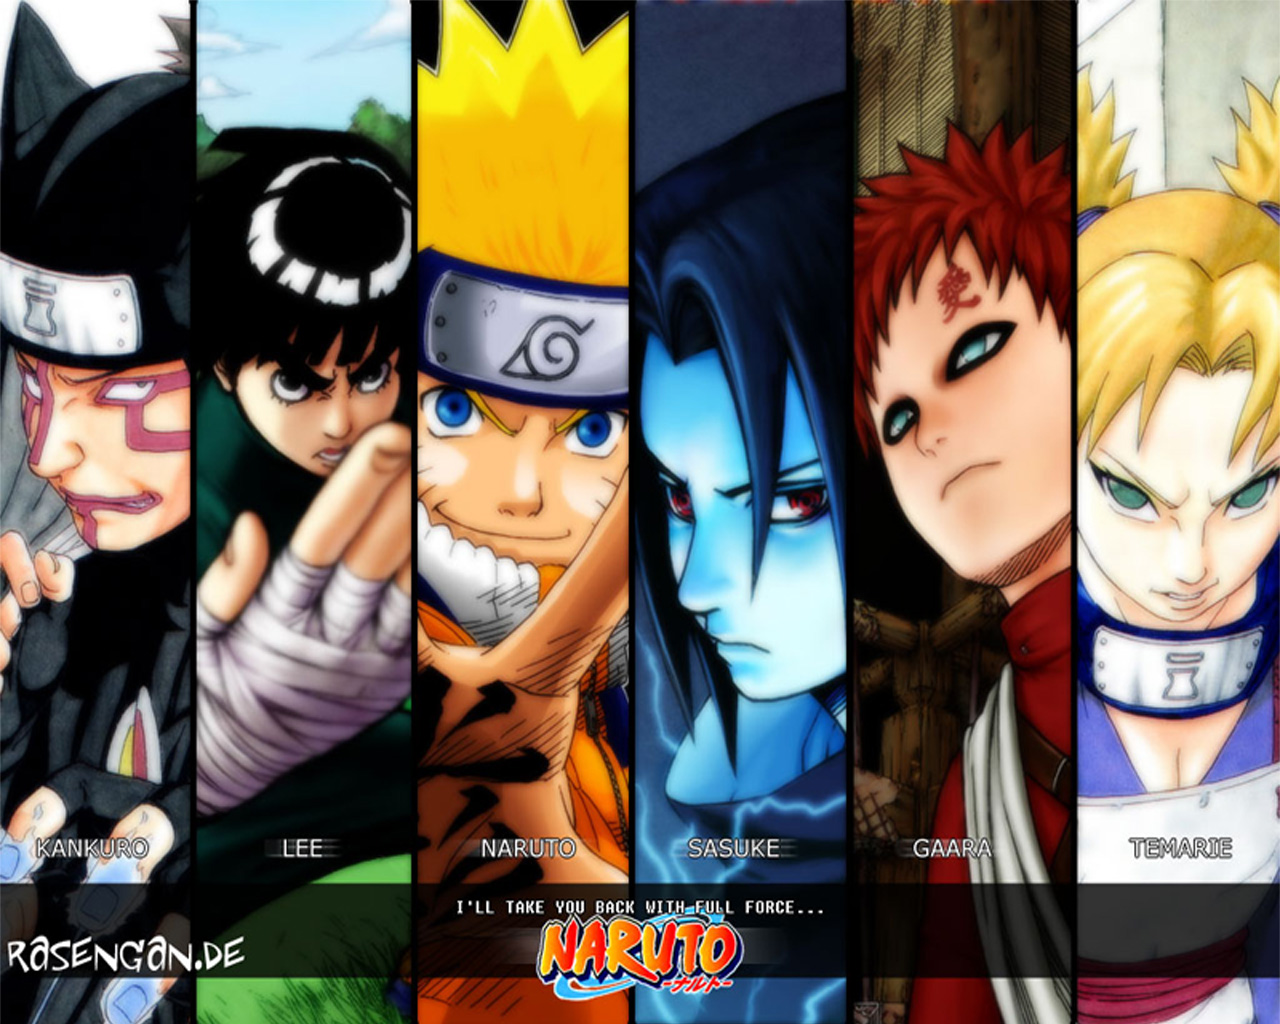 naruto welcome